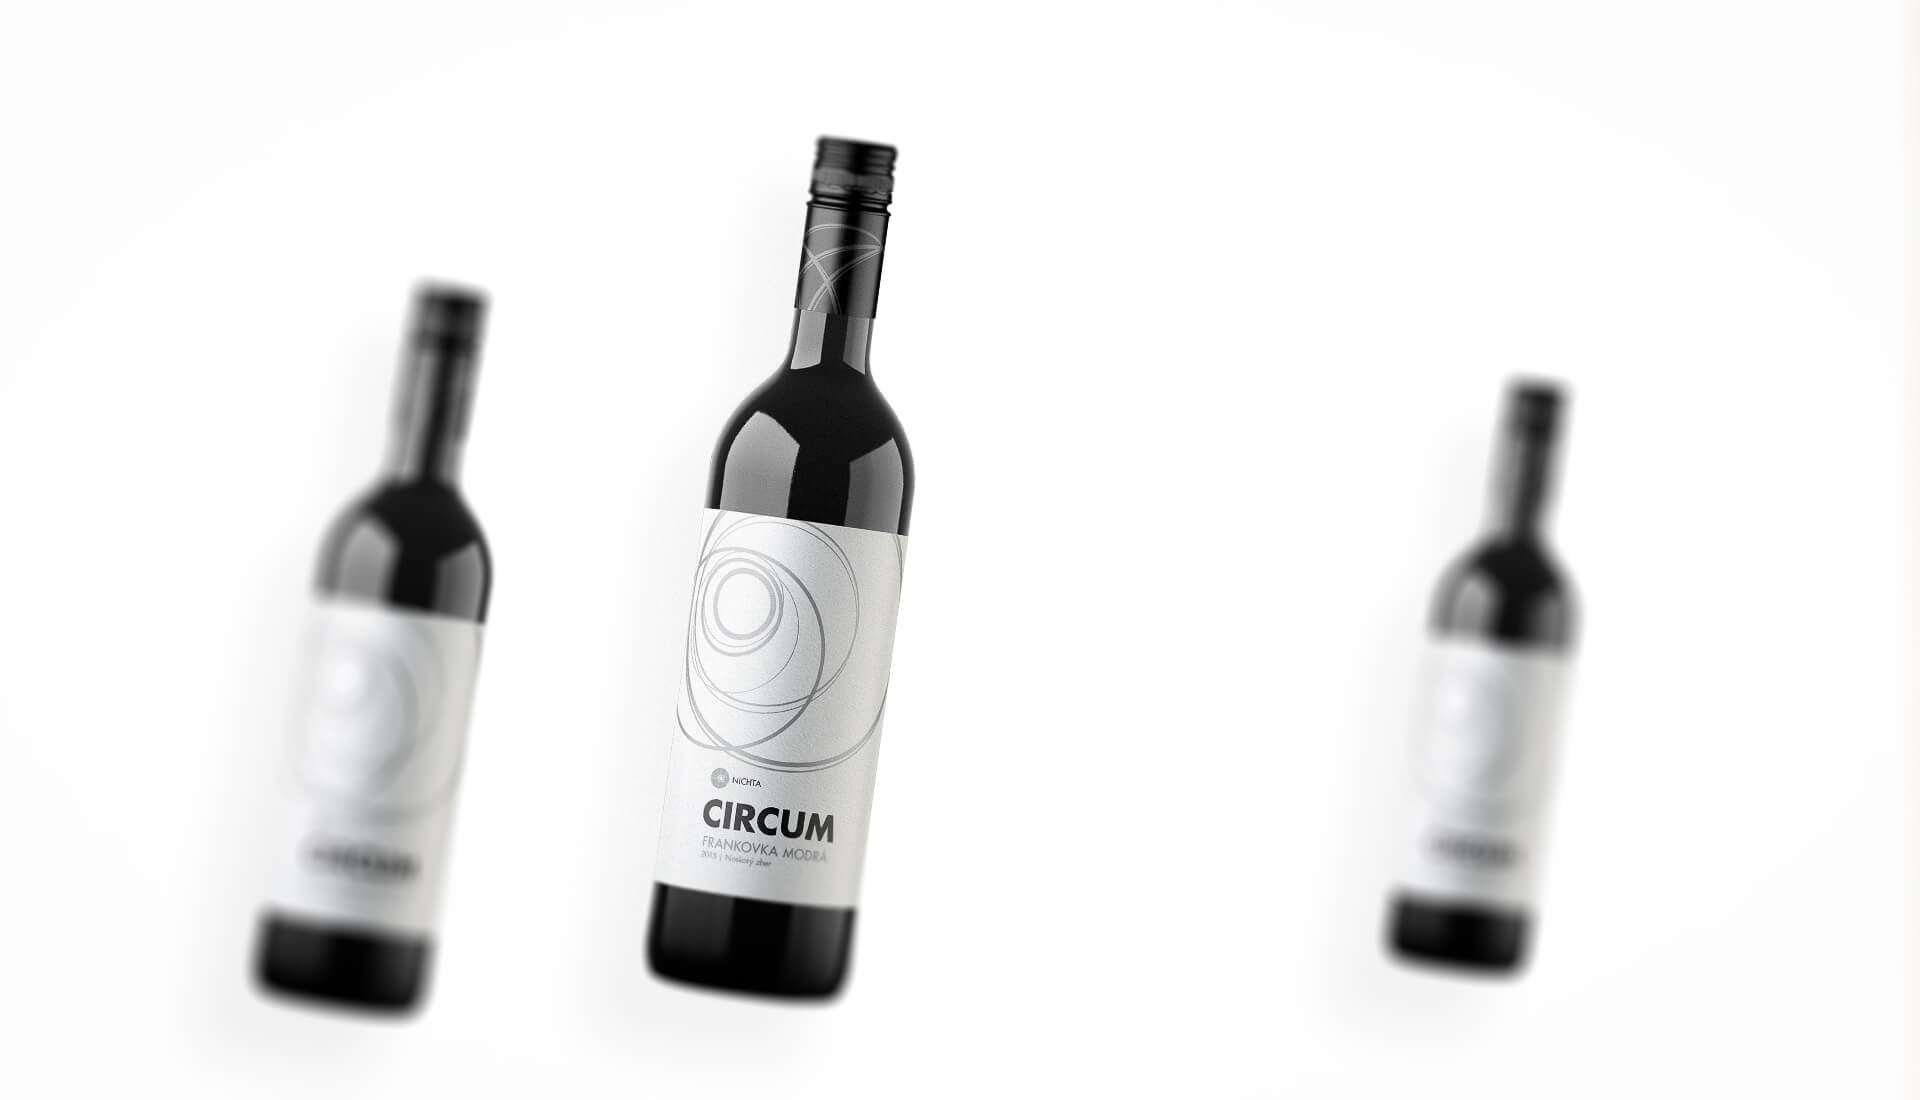 Wine label packaging design CIRCUM NICHTA winery red wines